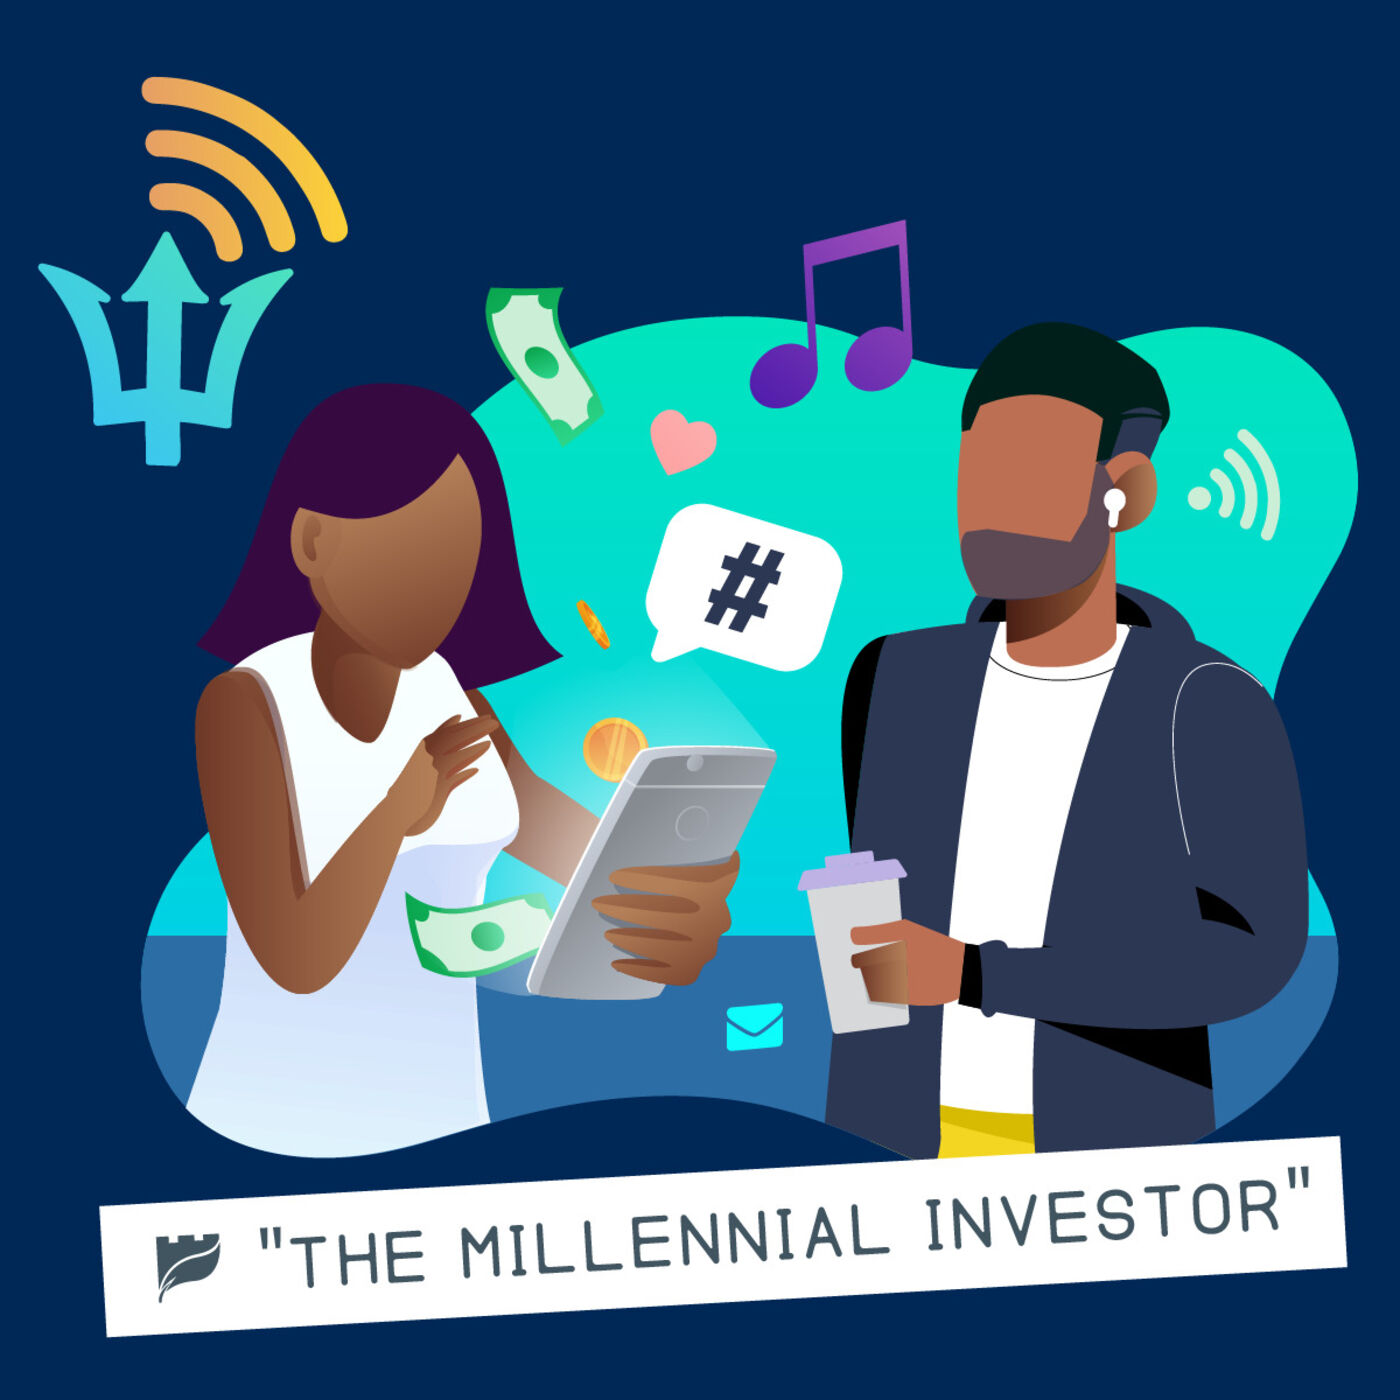 Ep. 17: The Millennial Investor